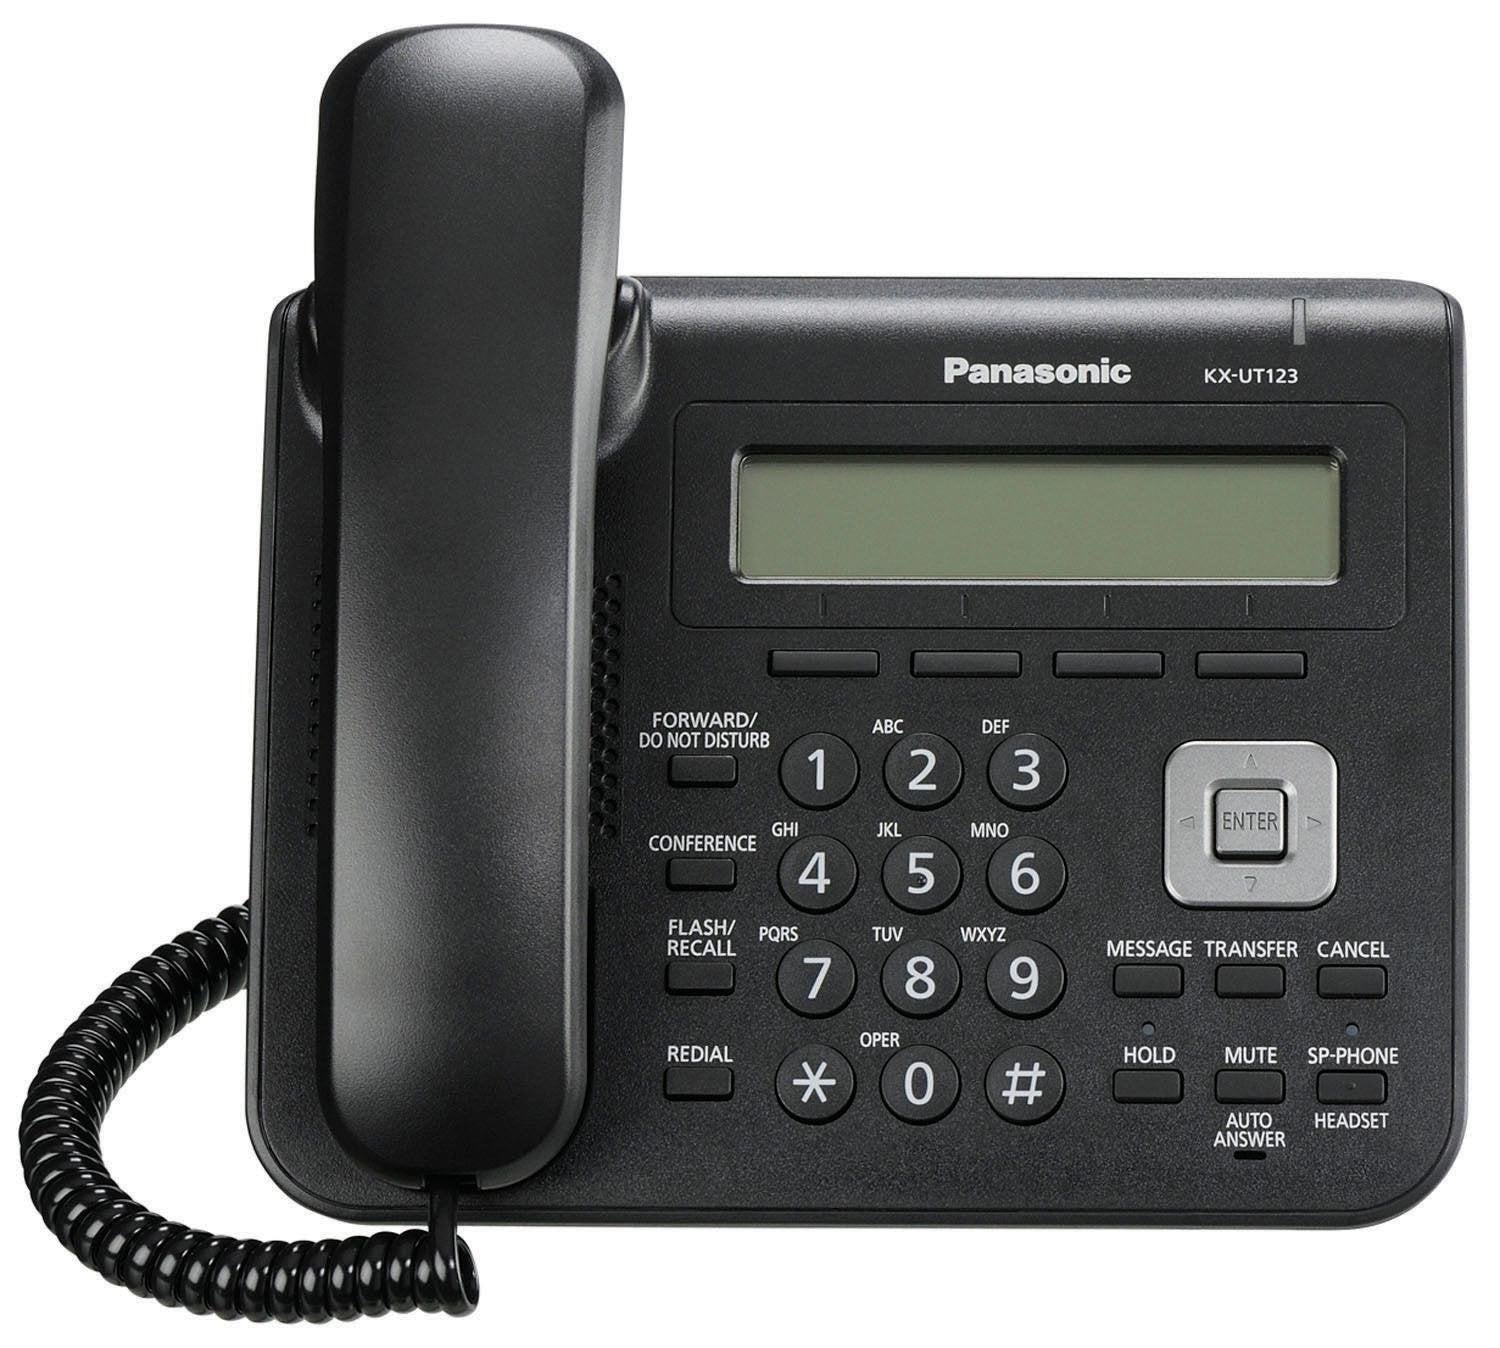 KX-UT123-B Basic SIP Phone with 3-Line Backlit LCD Display and 2 SIP Accounts